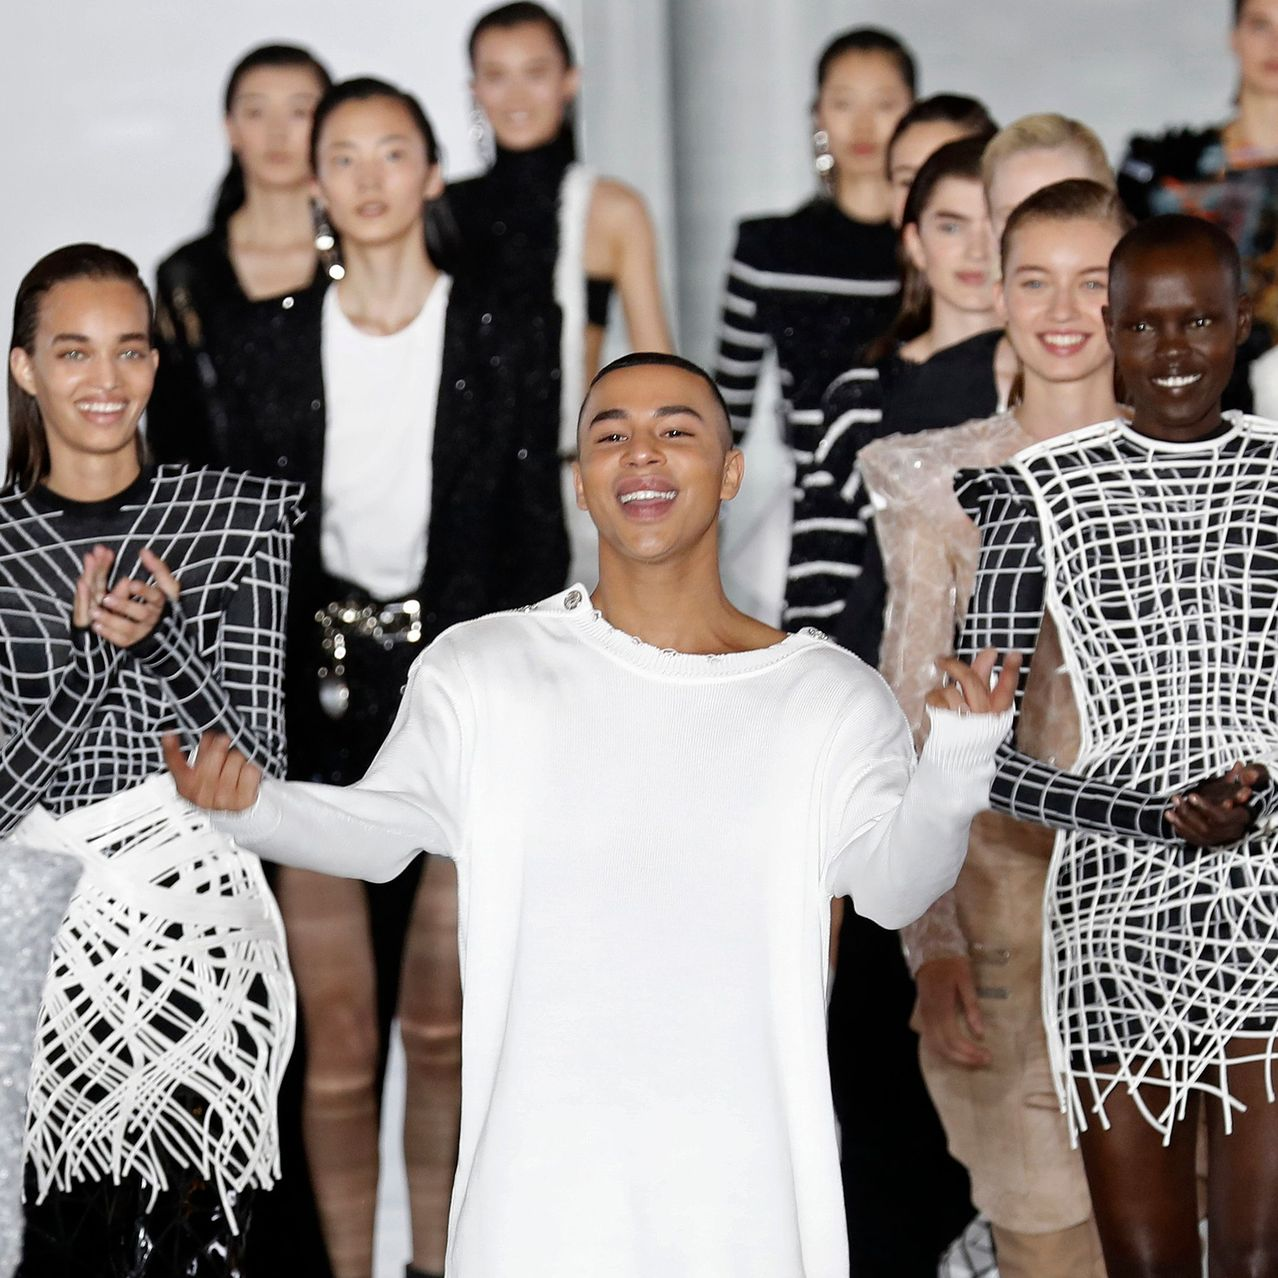 Olivier Rousteing, center, greeted the crowd at a Balmain fashion show in Paris in September.